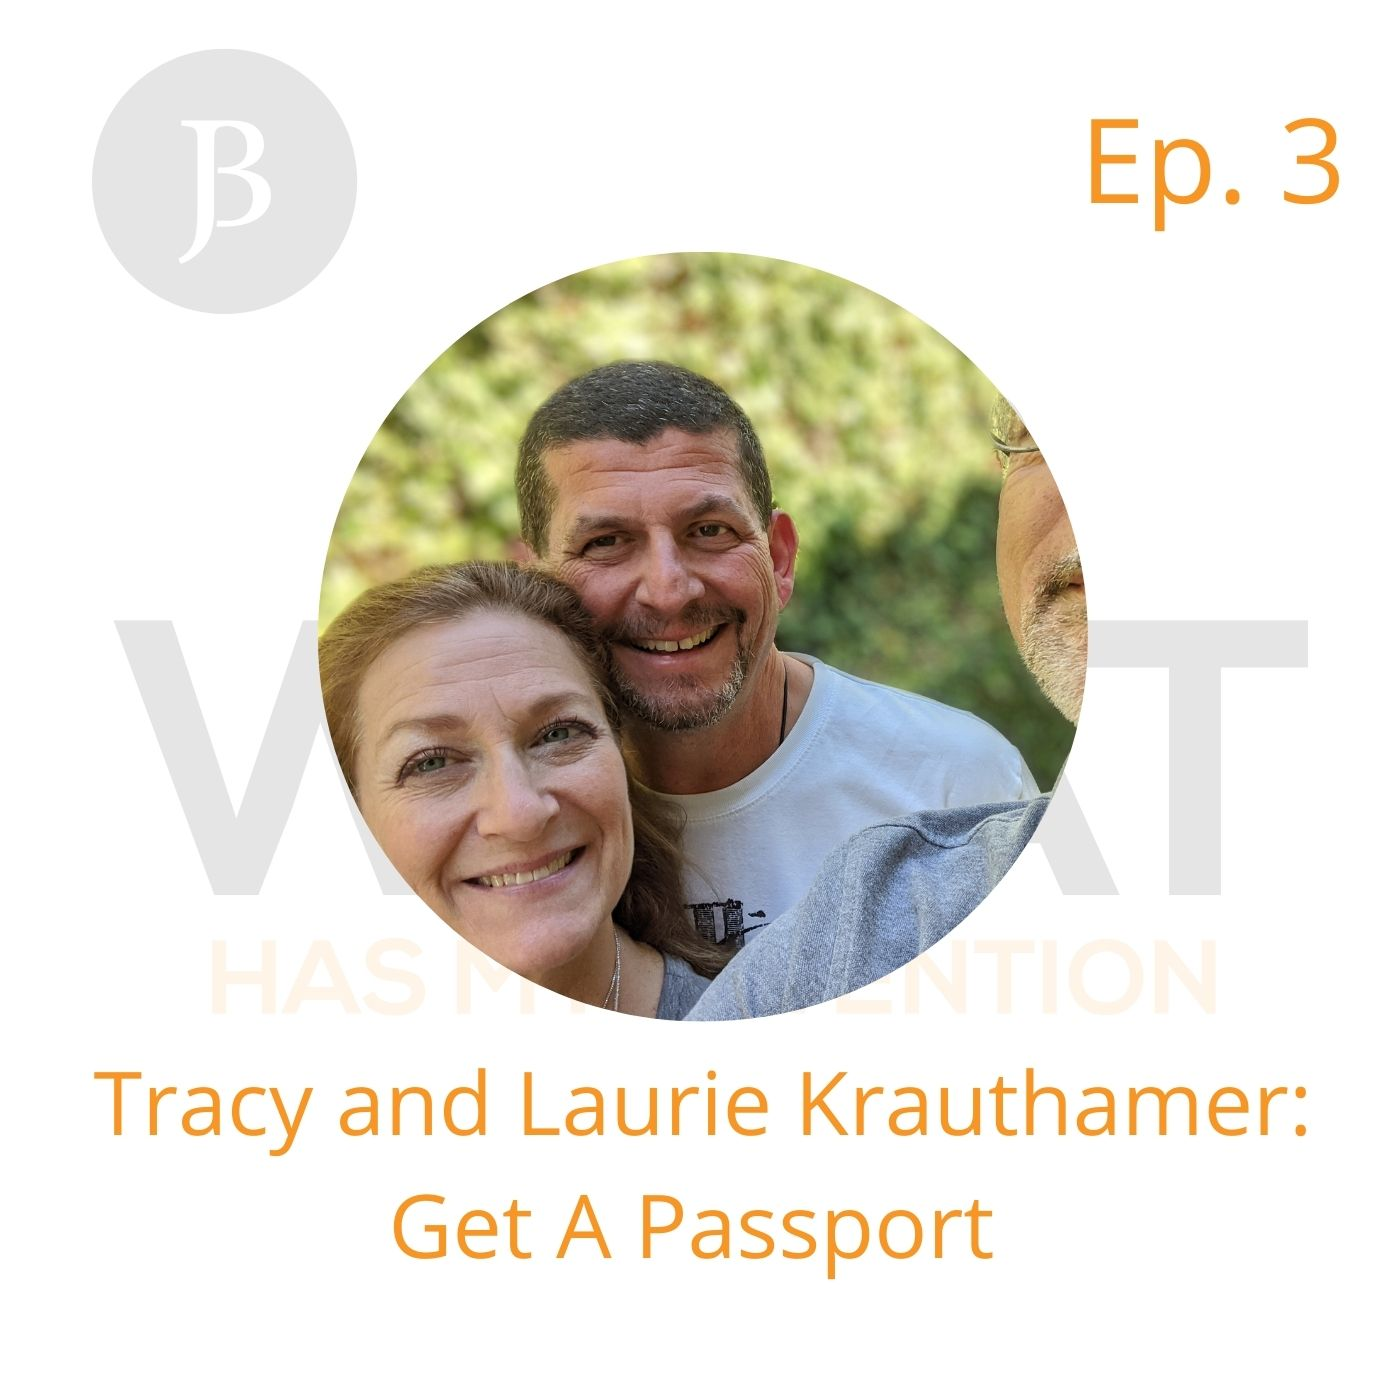 Ep. 3 Tracy and Laurie say: Get A Passport